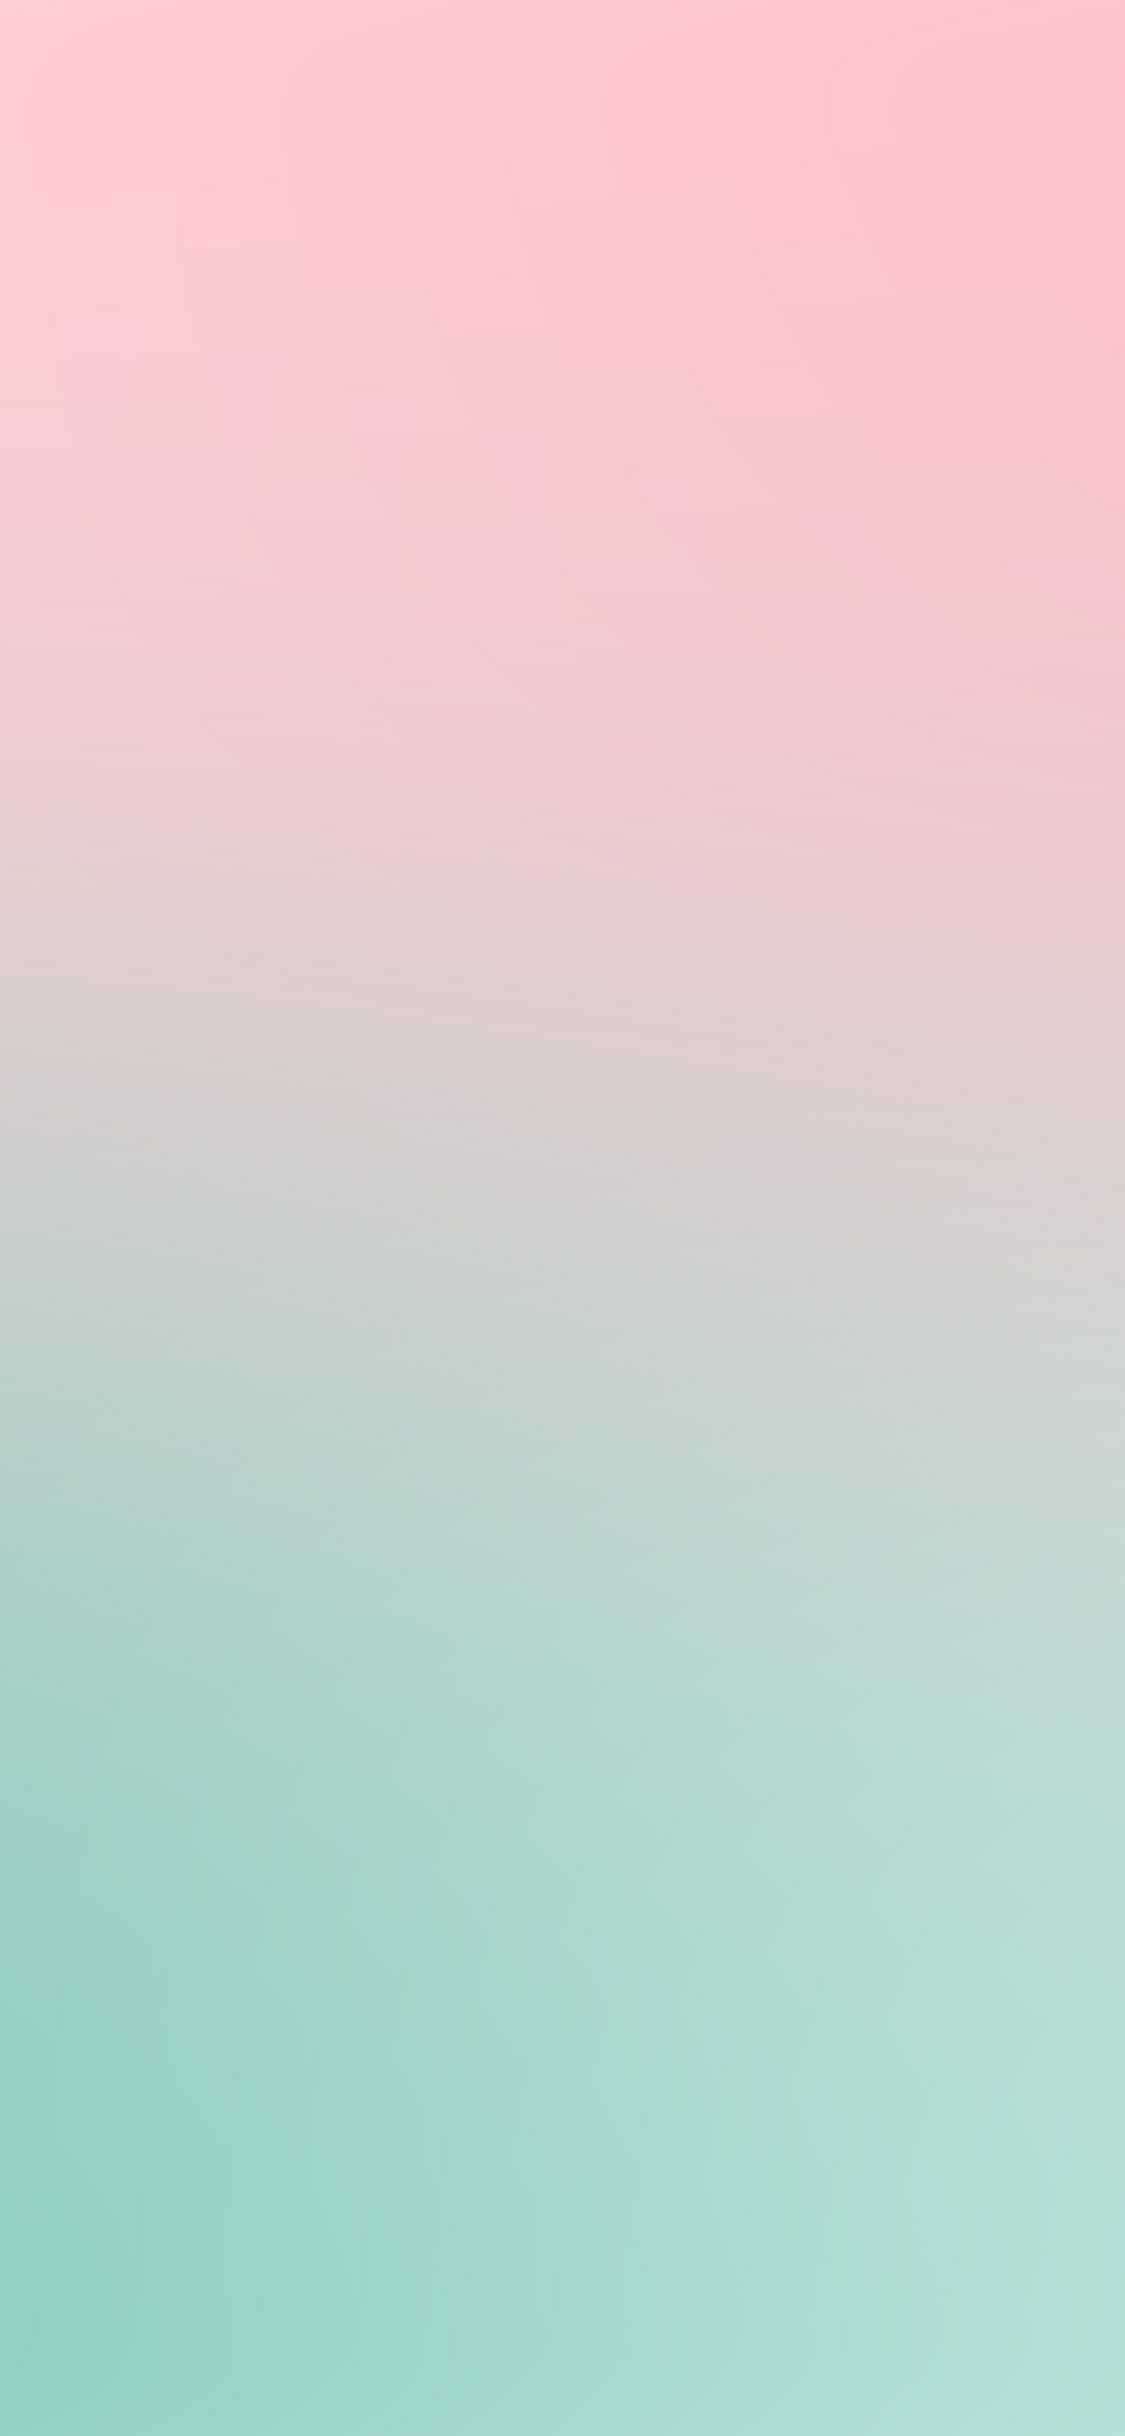 Iphonexpapers Com Iphone X Wallpaper Sn08 Pink Pastel Blur Gradation